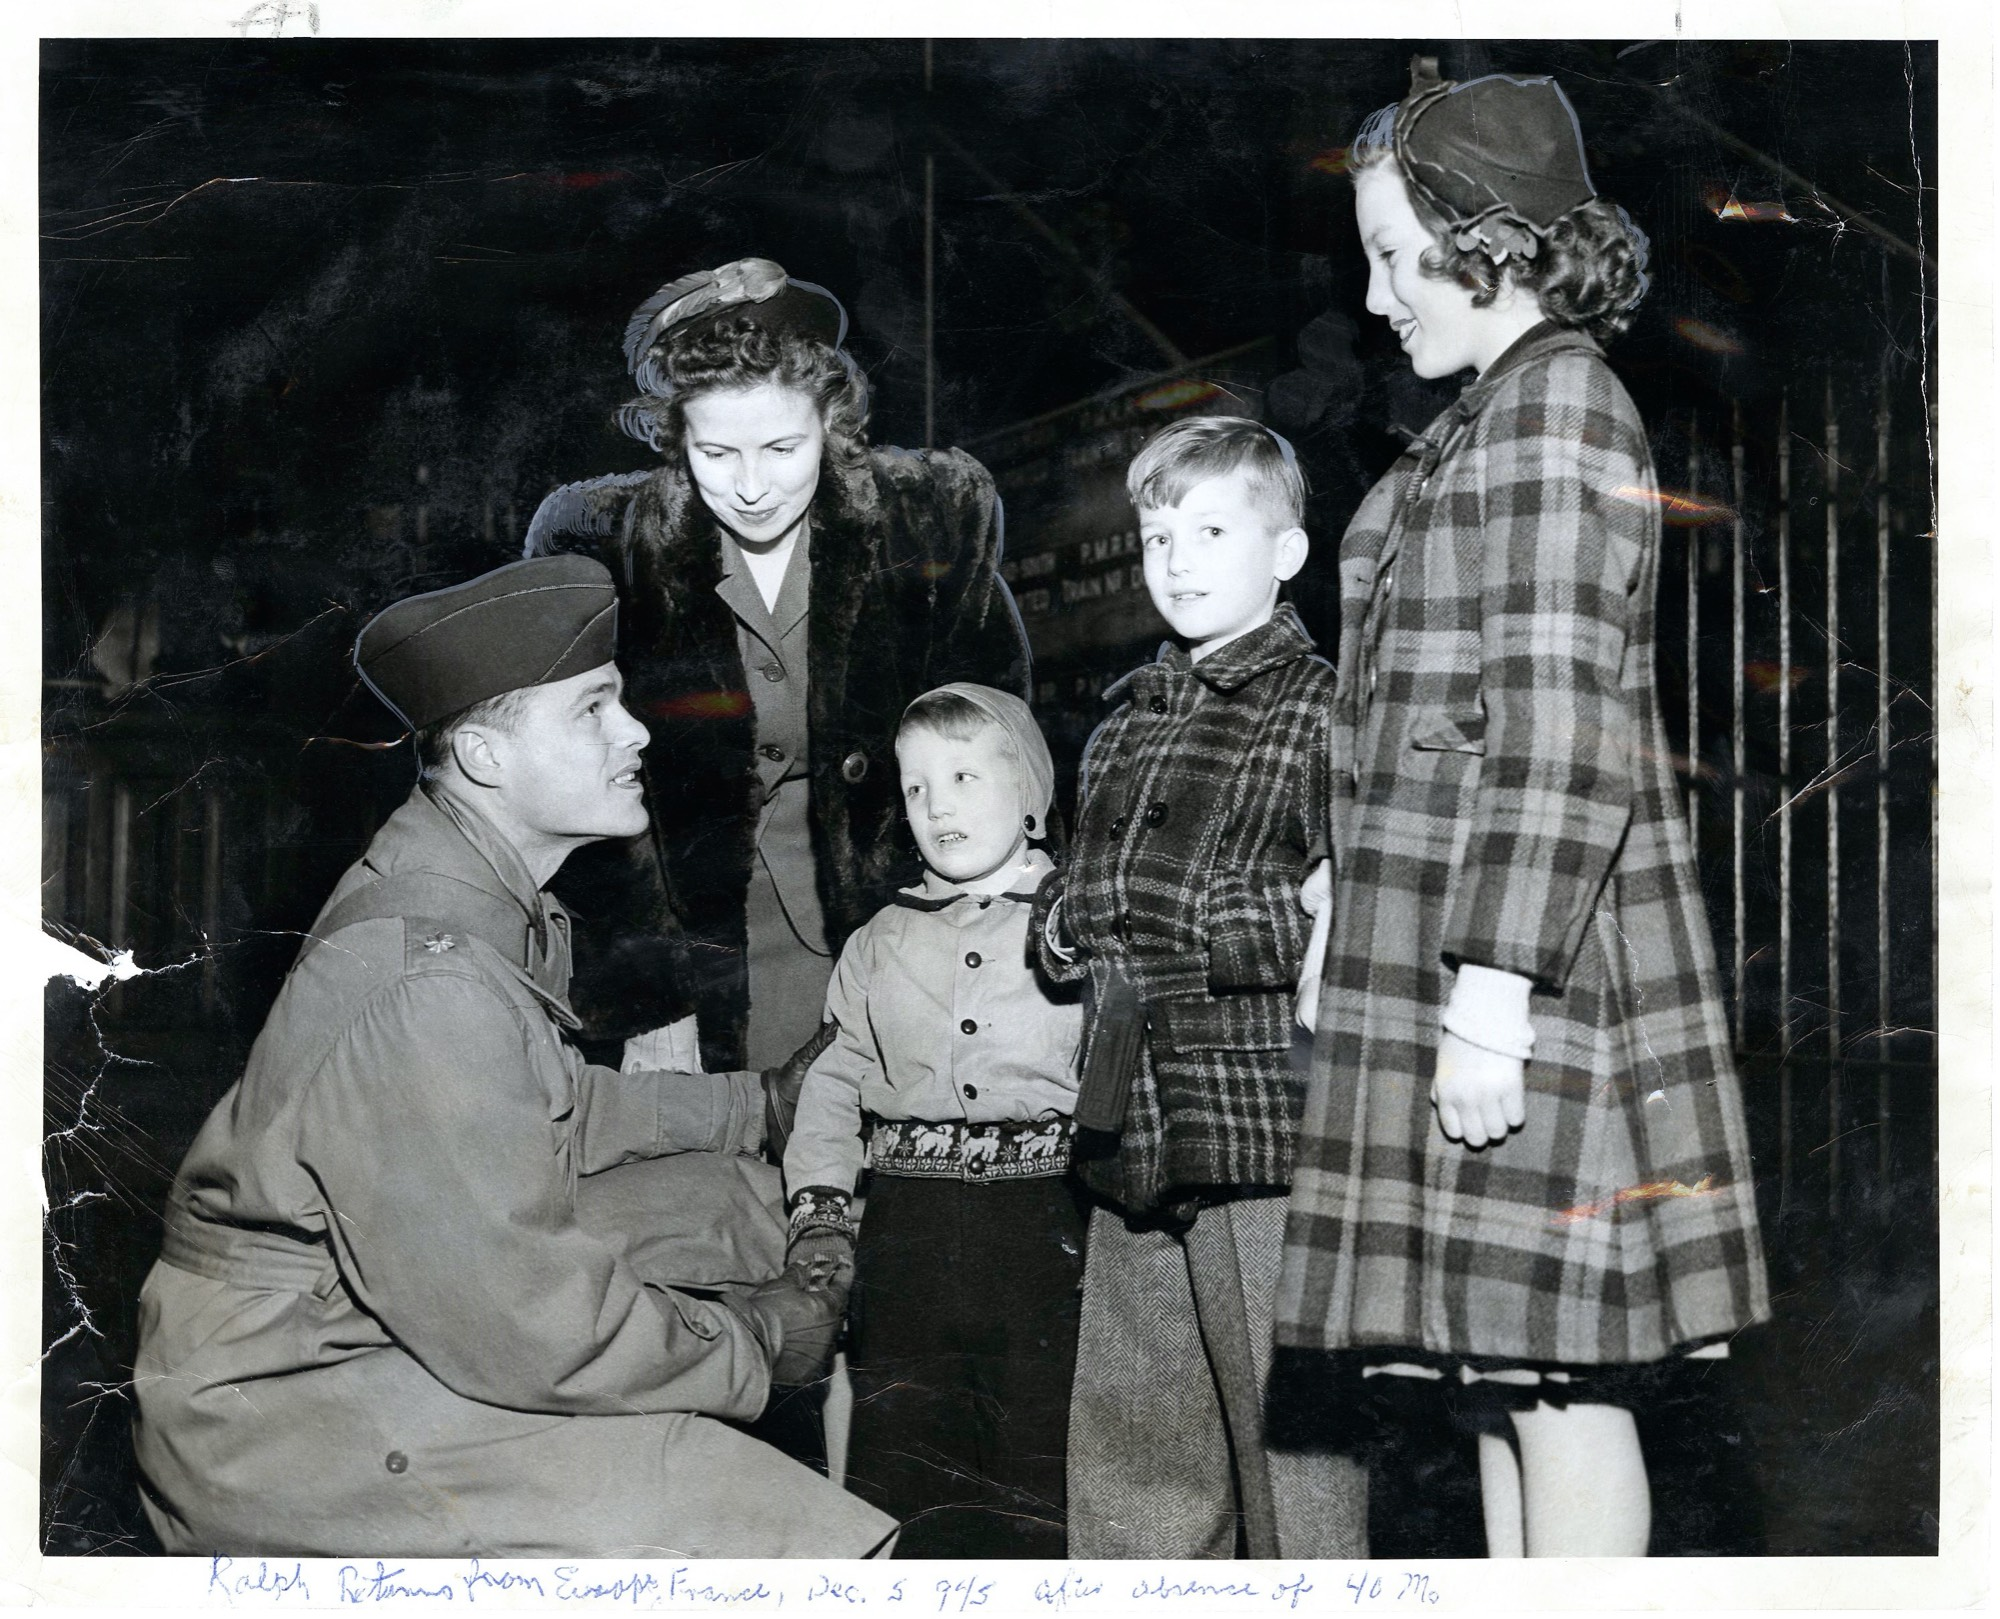 Ralph greeting his wife and children